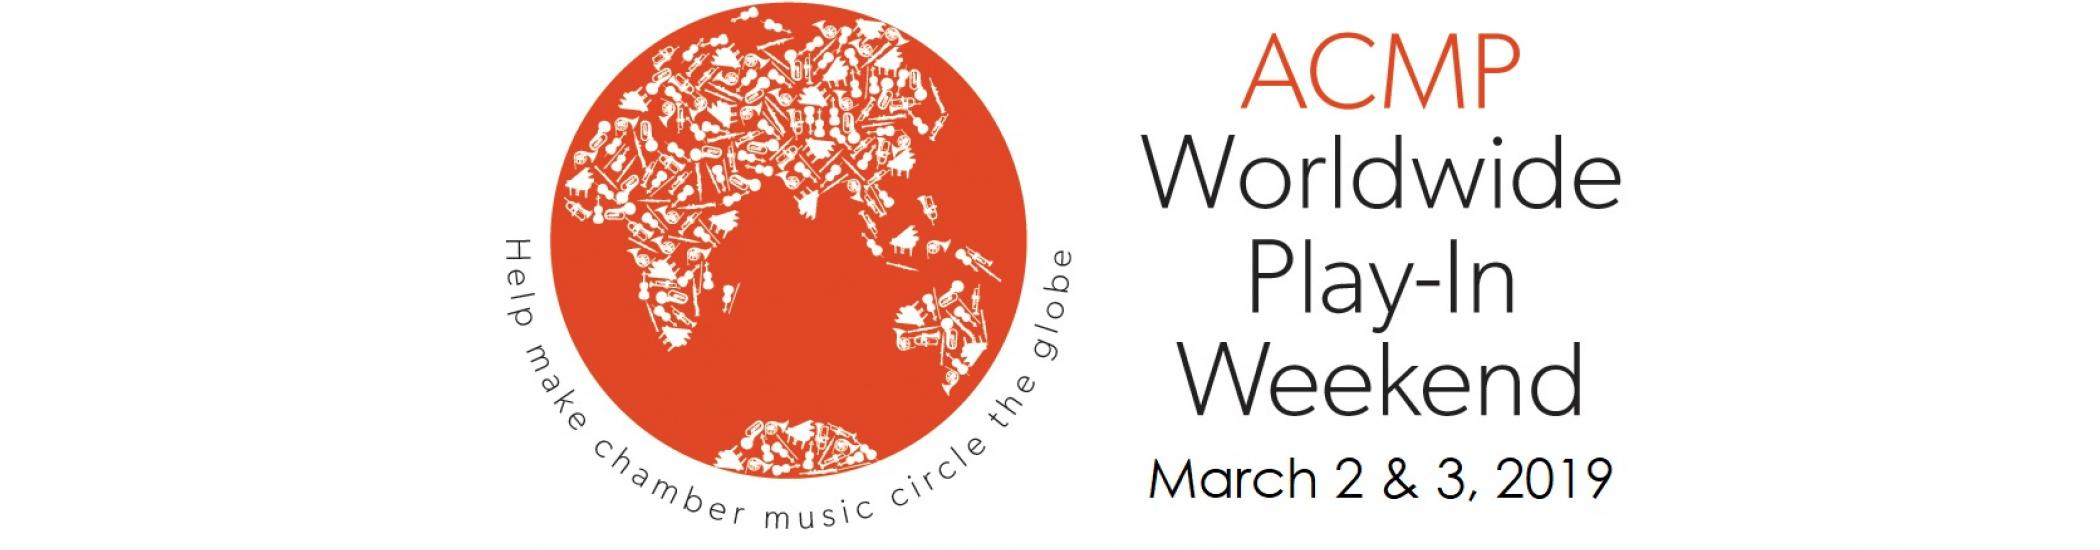 Week End Acmp Worldwide Play In Weekend Acmp